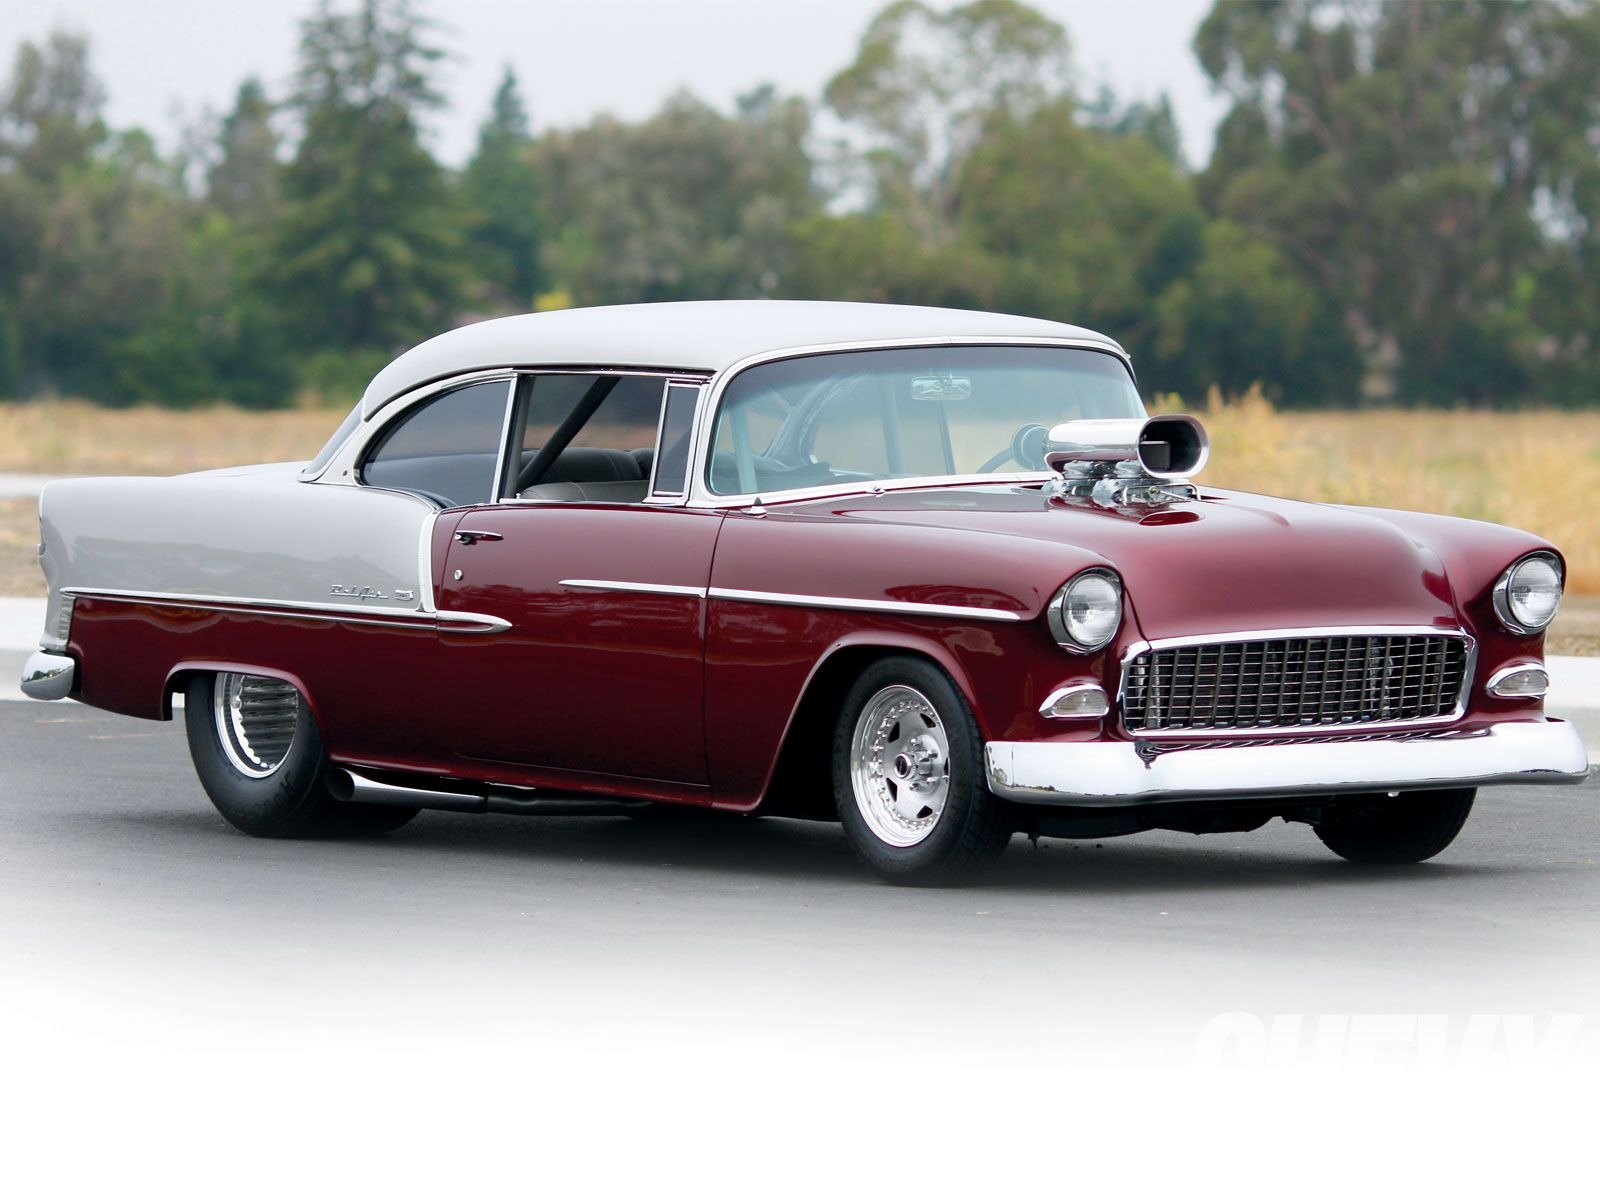 1955 chevy bel air | 1955 Chevy 210 Bel Air 350 Chevy Small Block ...